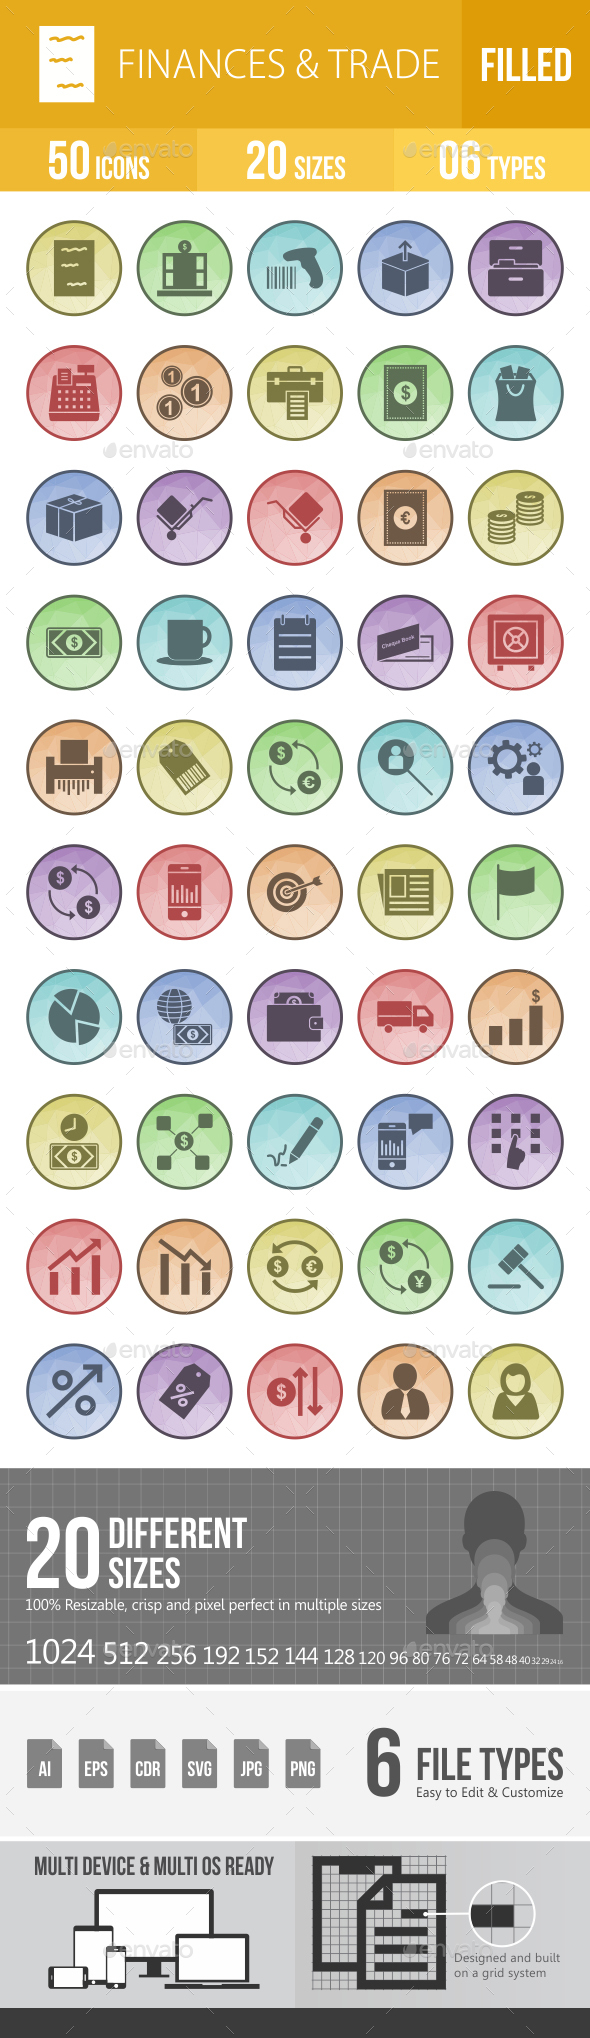 50 Finances & Trade Filled Low Poly Icons - Icons